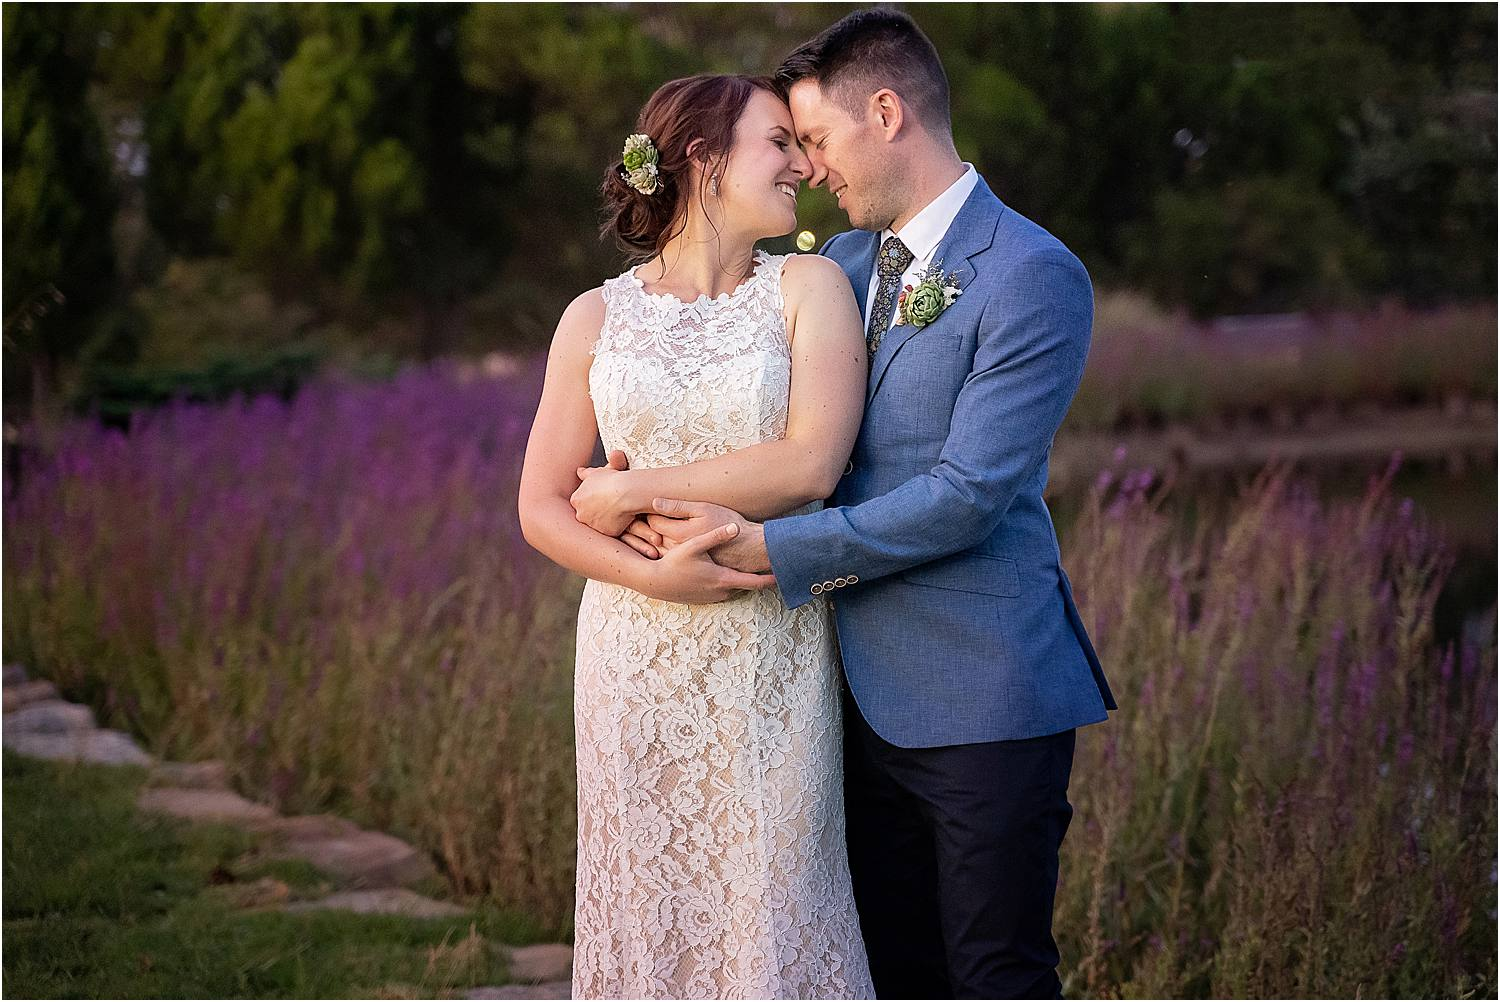 Al-Ru Farm, DreamTeamImaging, Best Wedding Photographers Adelaide